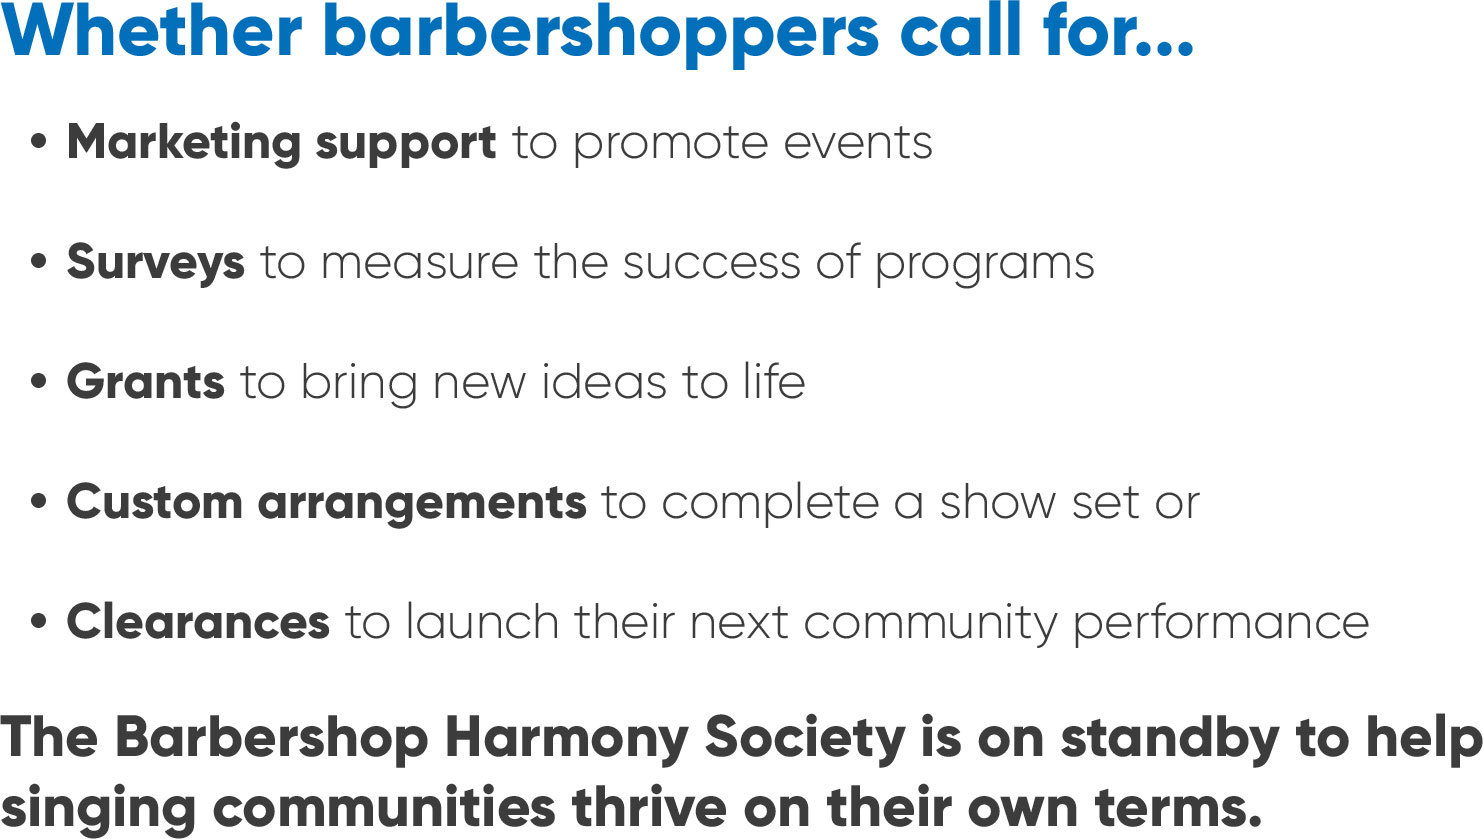 Text whetherbarbershoppers